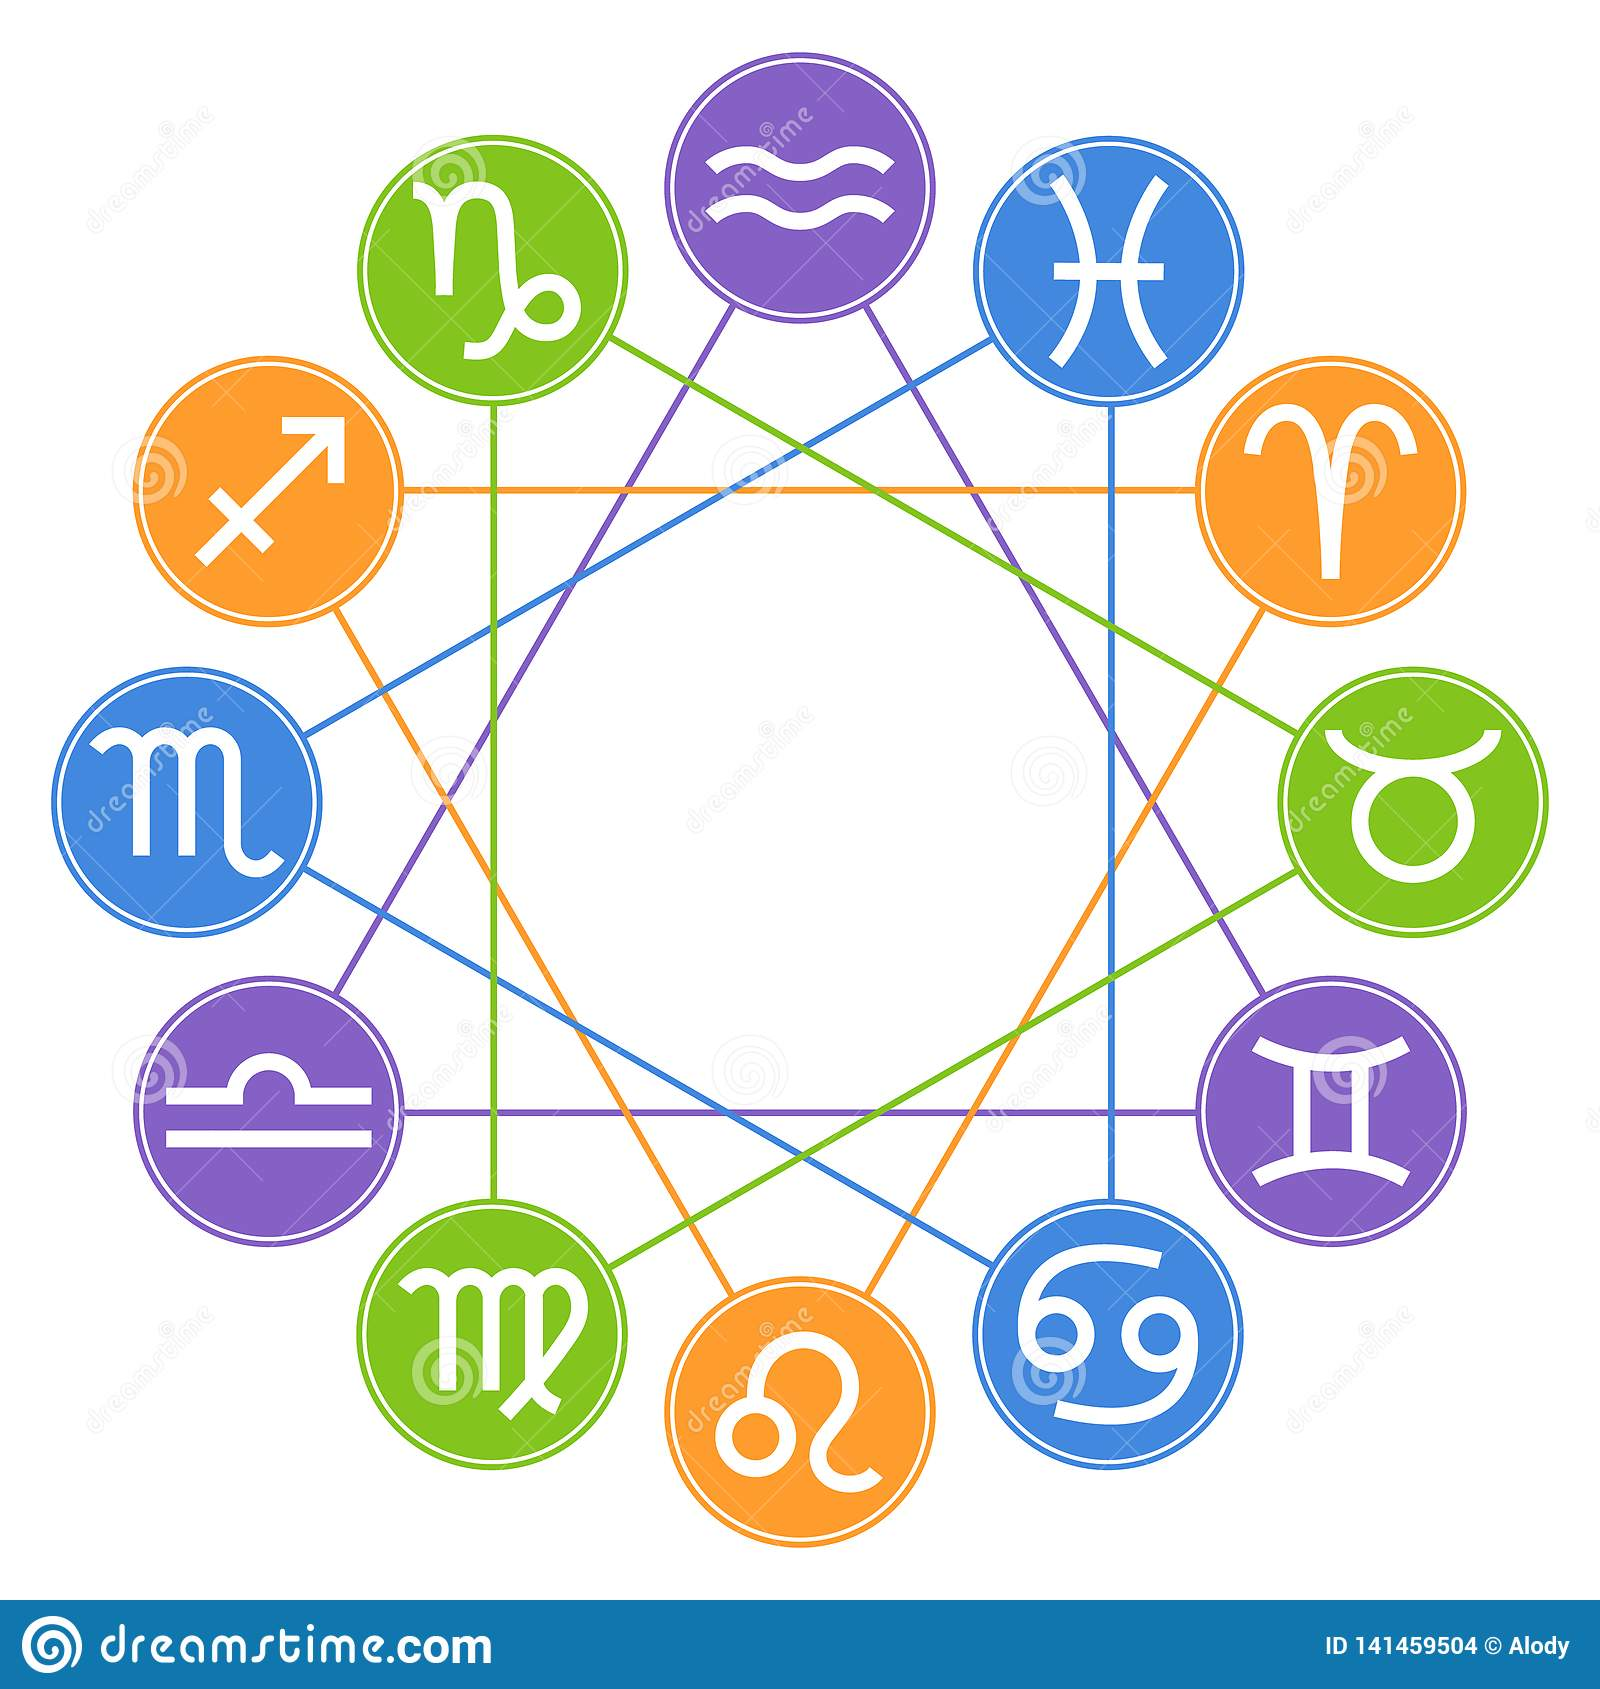 Circle Zodiac Signs  Zodiac Element  Horoscope Signs: Leo